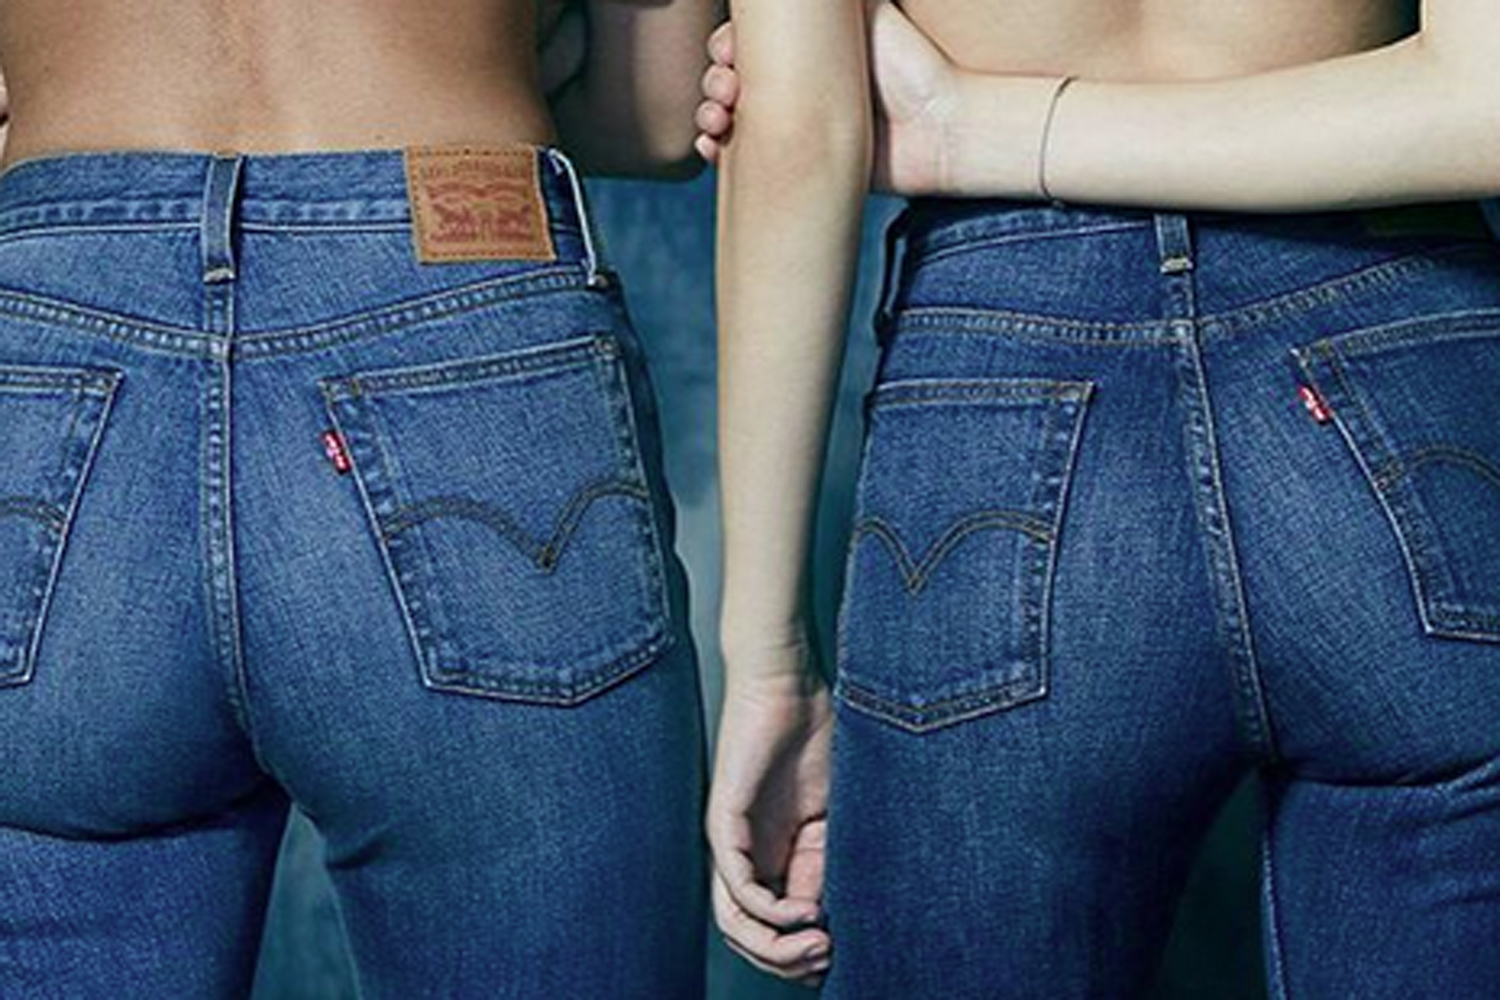 Life mystery solved: This is why jeans are called jeans